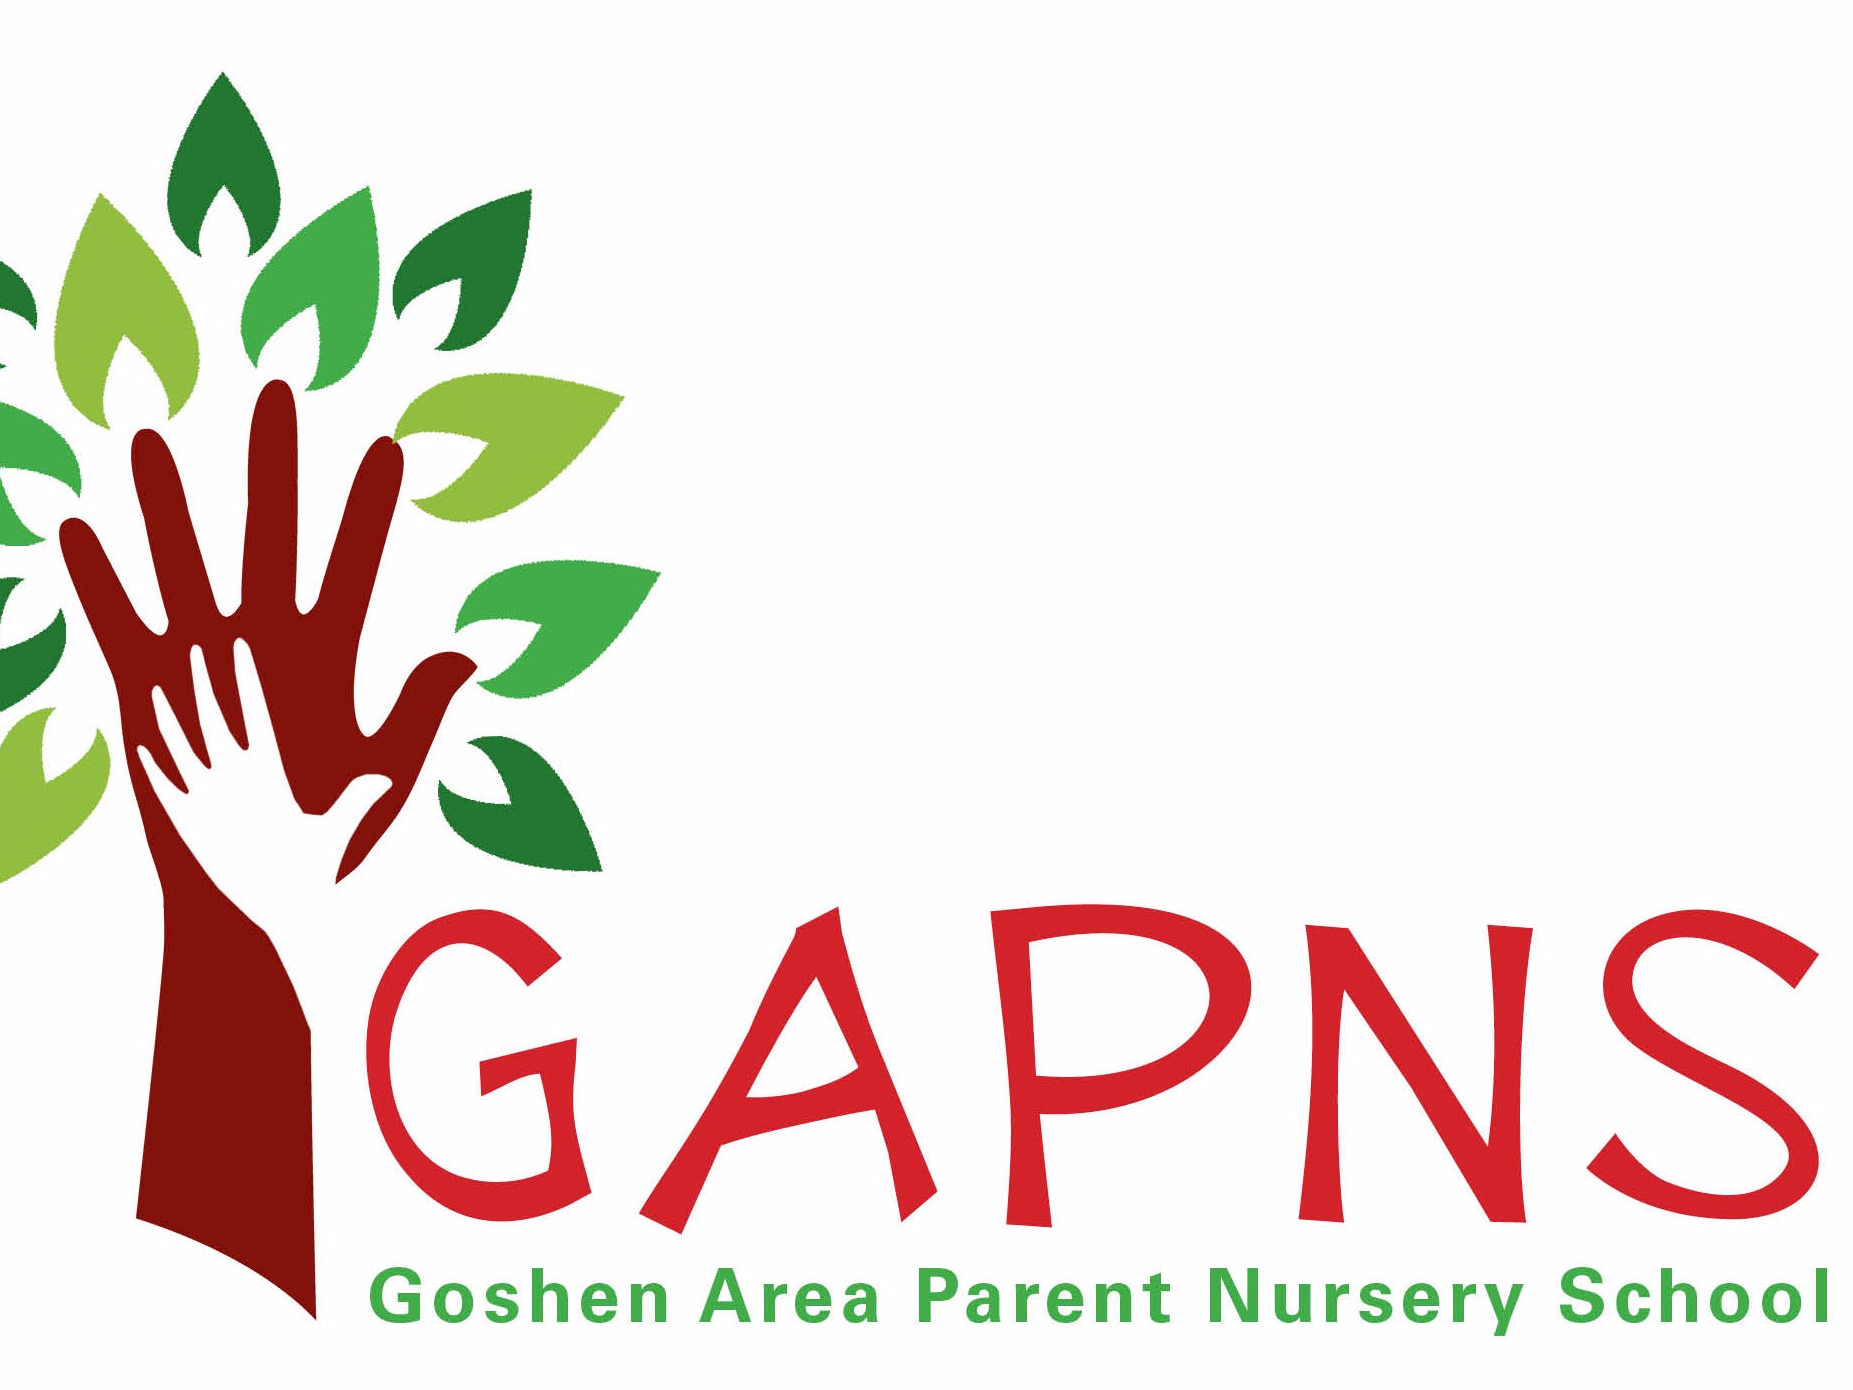 Goshen Area Parent Nursery School